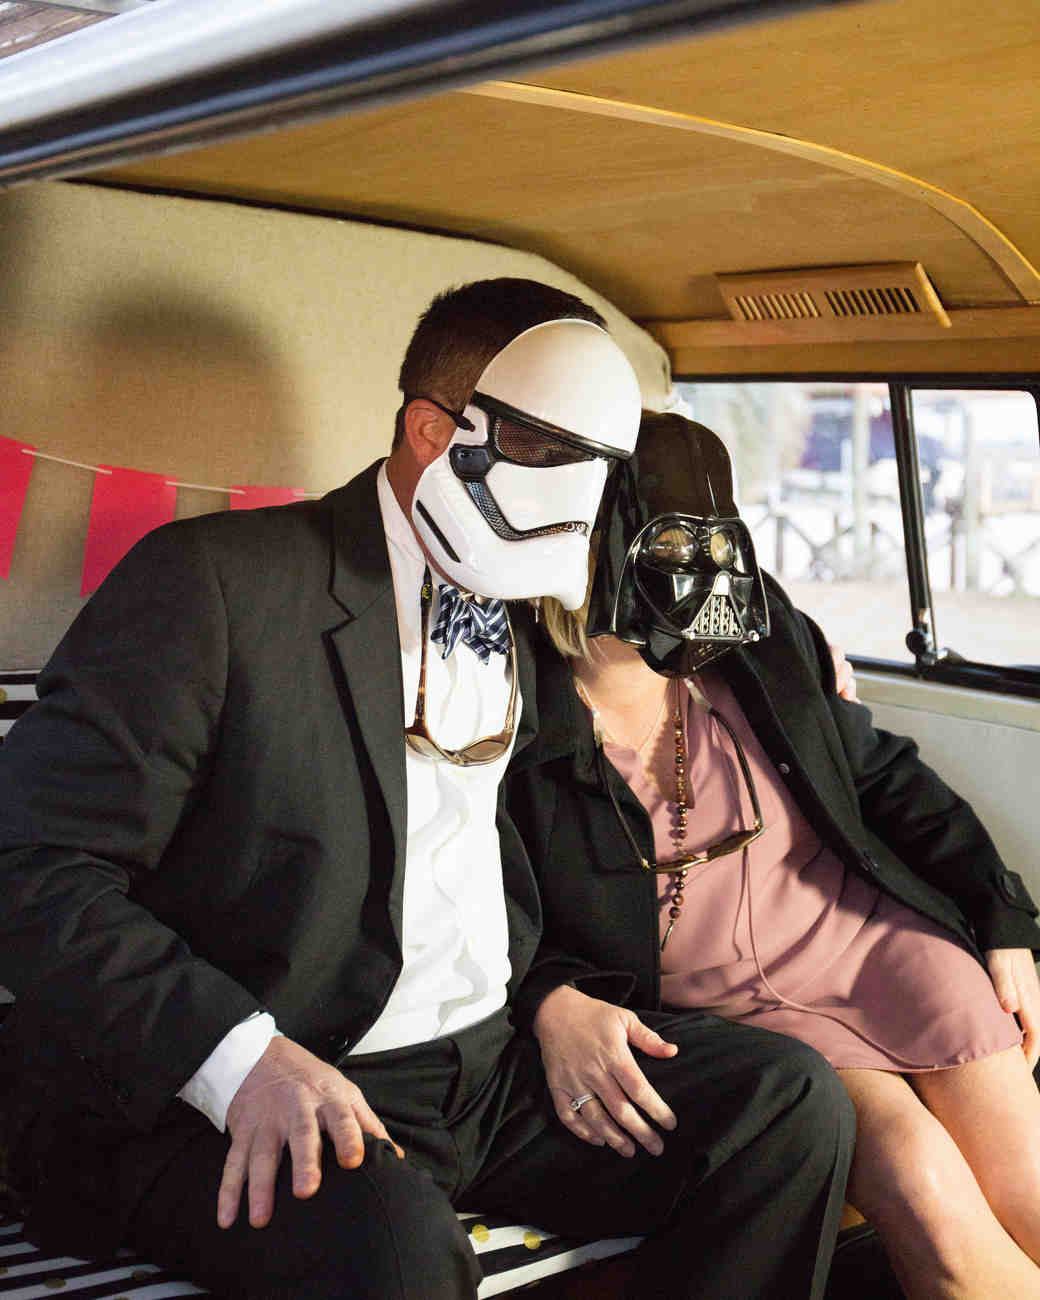 photo prob star wars face mask couple inside bus